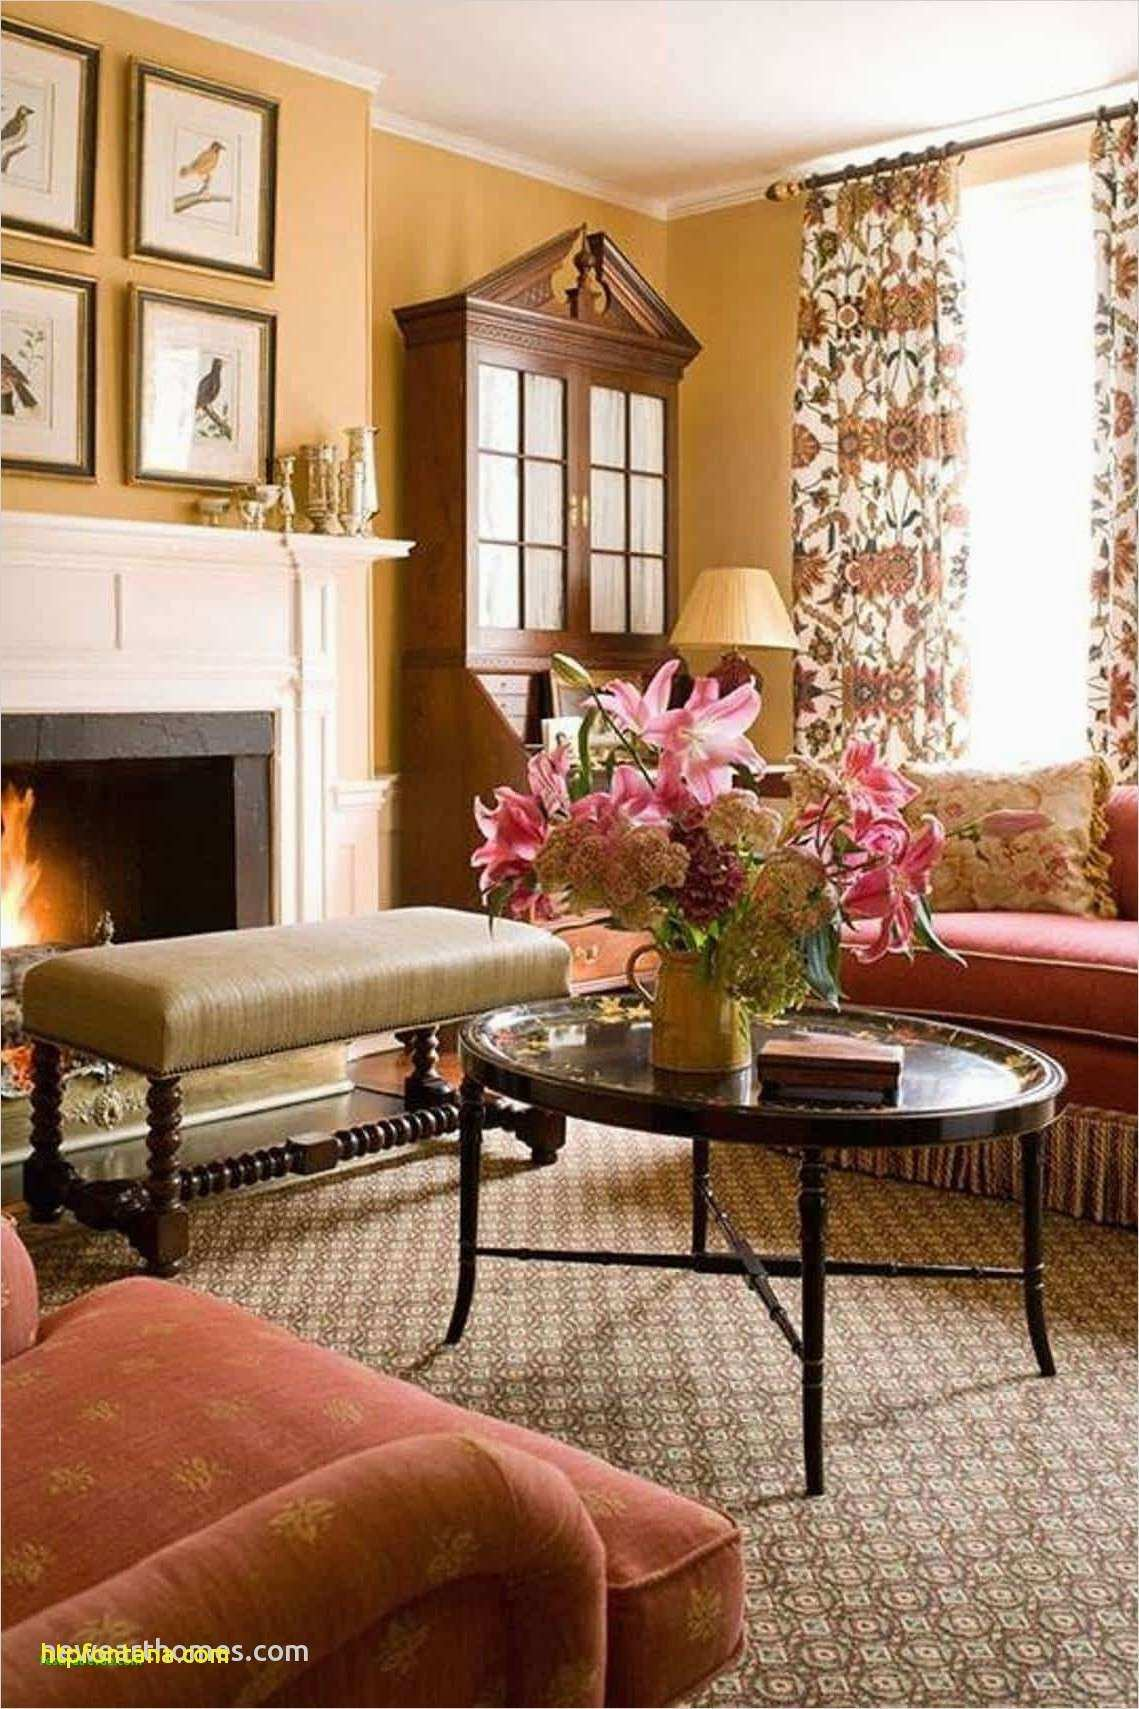 57 Unique Wall Decor Ideas for Living Room ExitRealEstate540